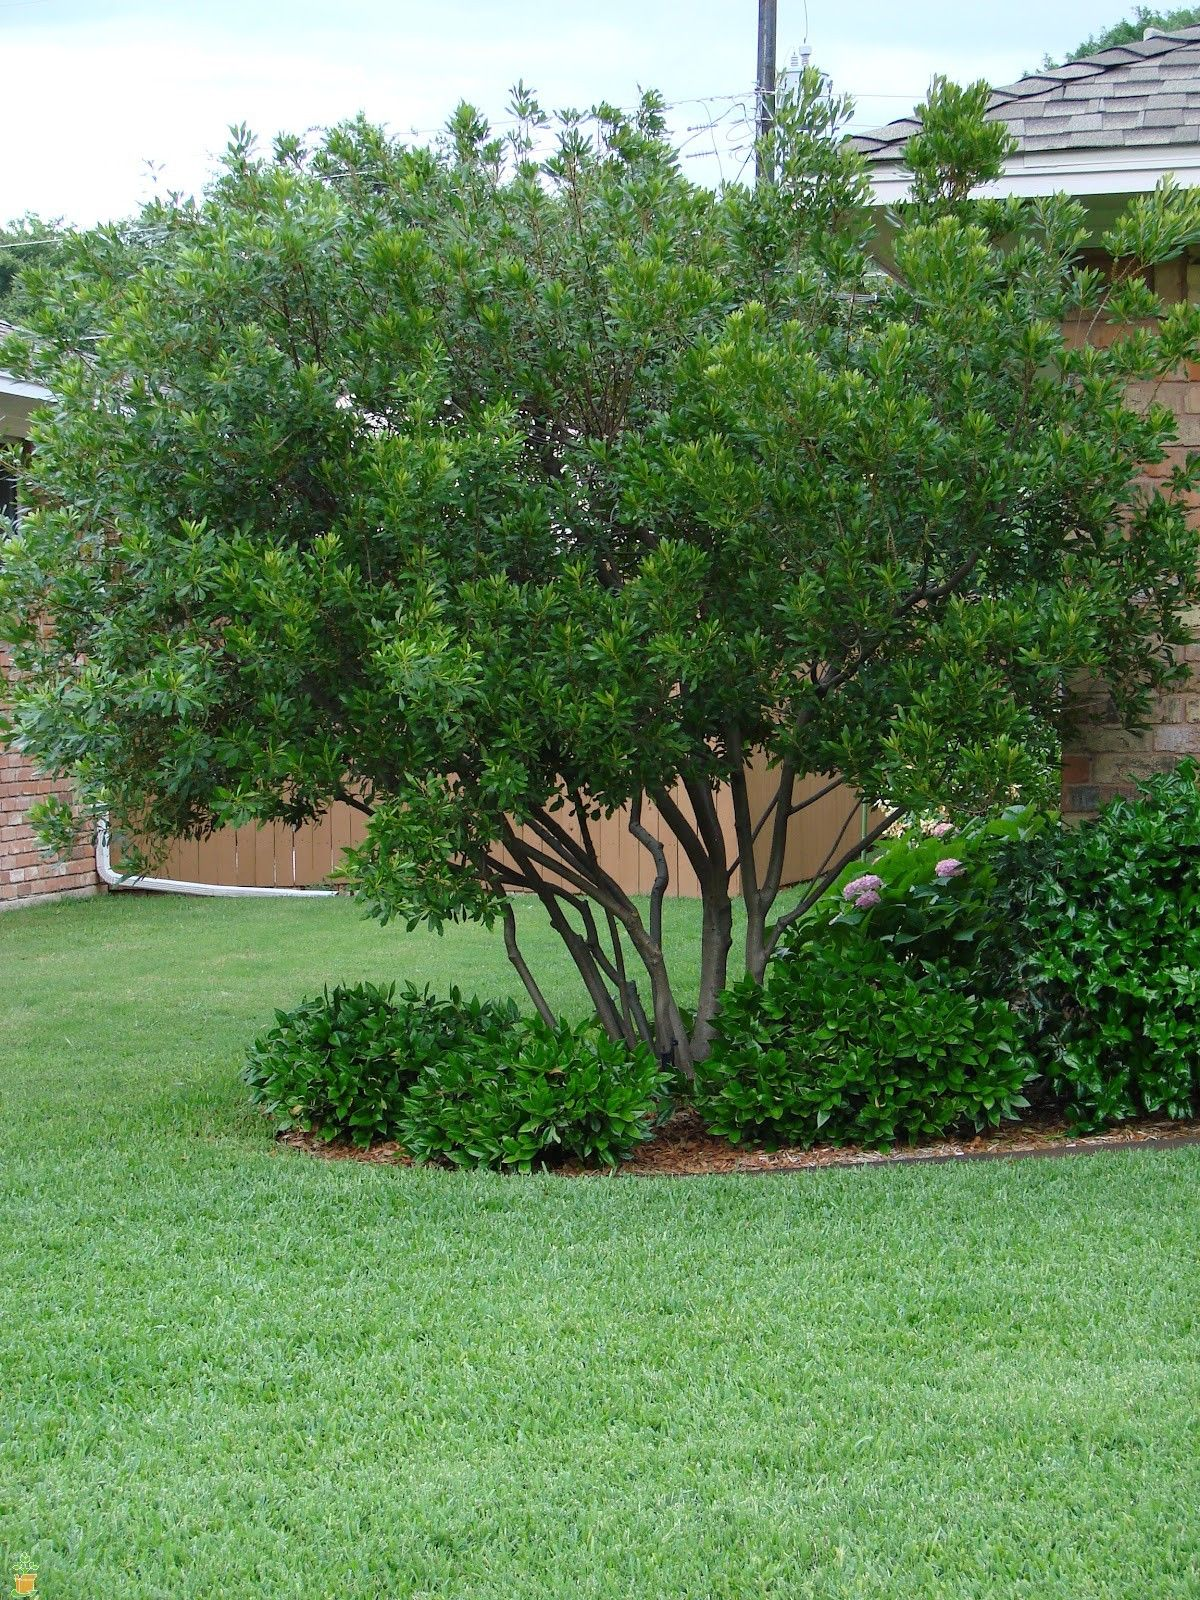 Wax Myrtle Backyard Trees Privacy Landscaping Landscaping Trees